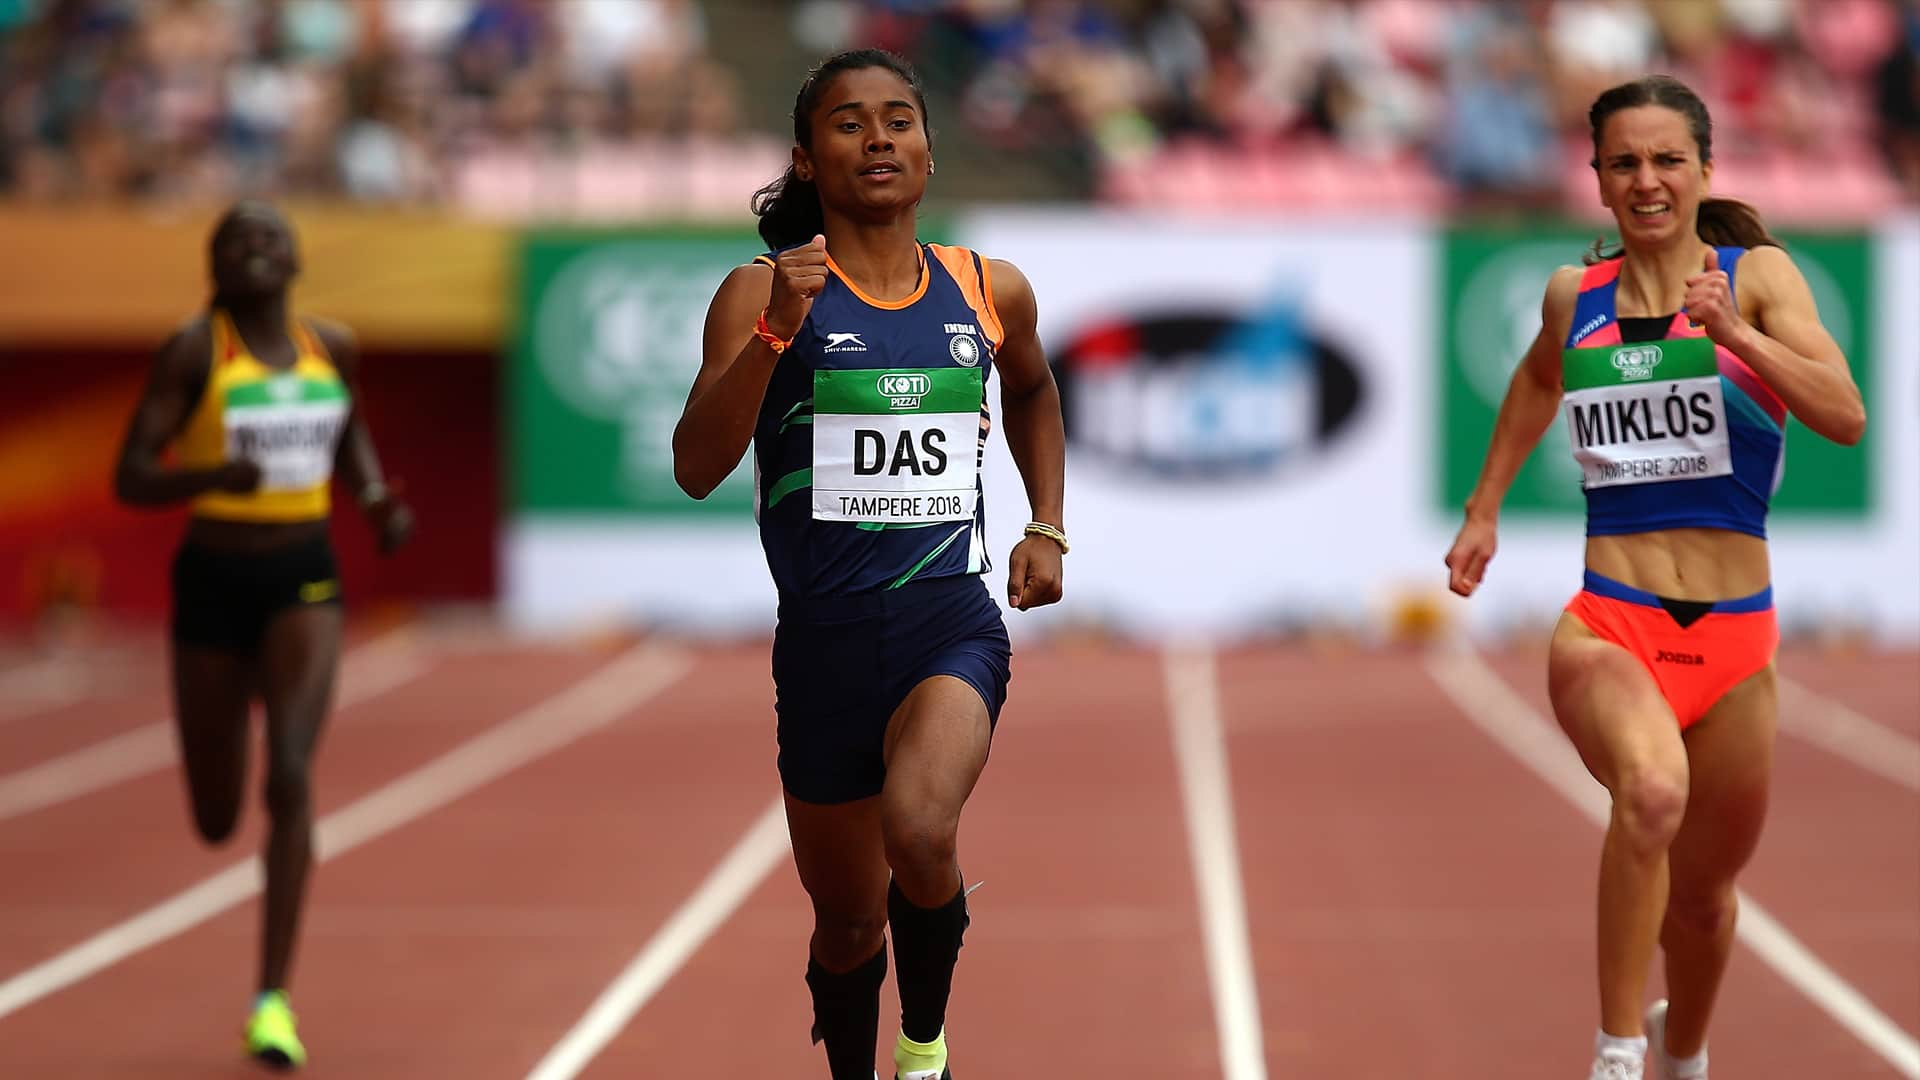 Hima Das write to Sports Ministry, wants permission to practice in outdoor